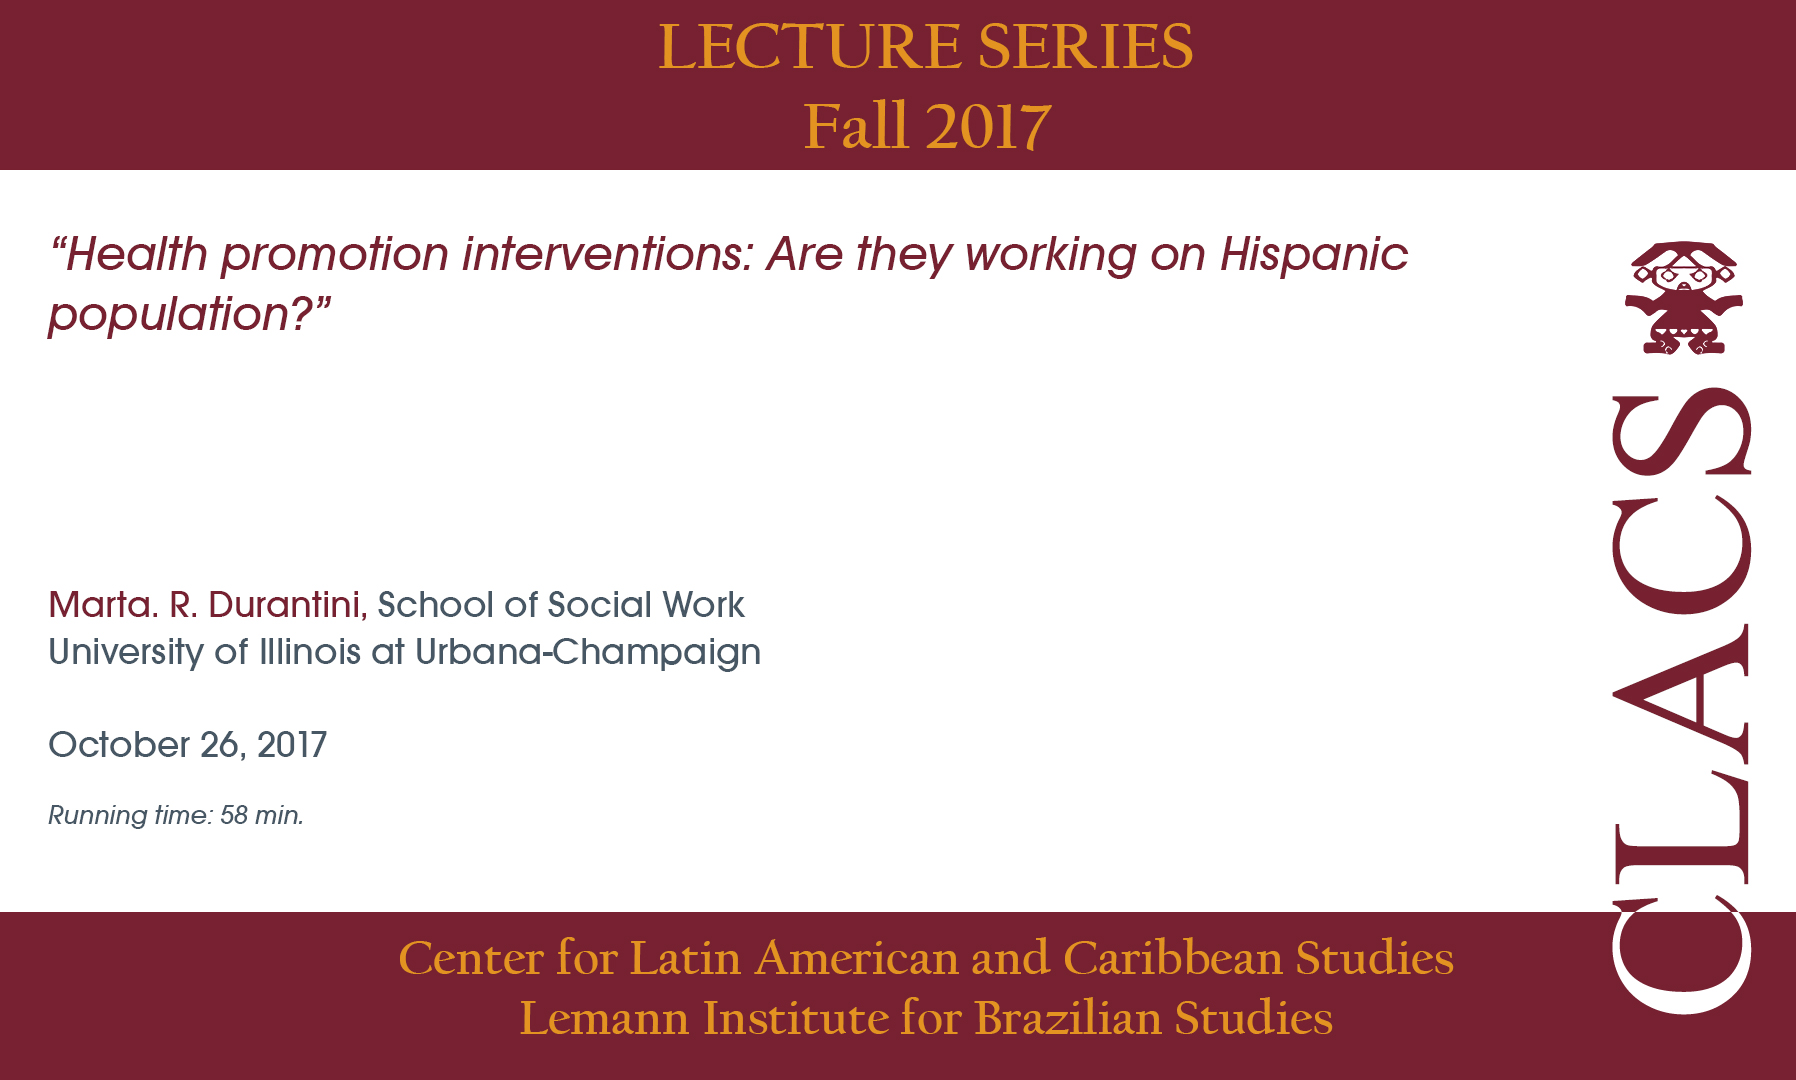 Health promotion interventions: Are they working on Hispanic population?